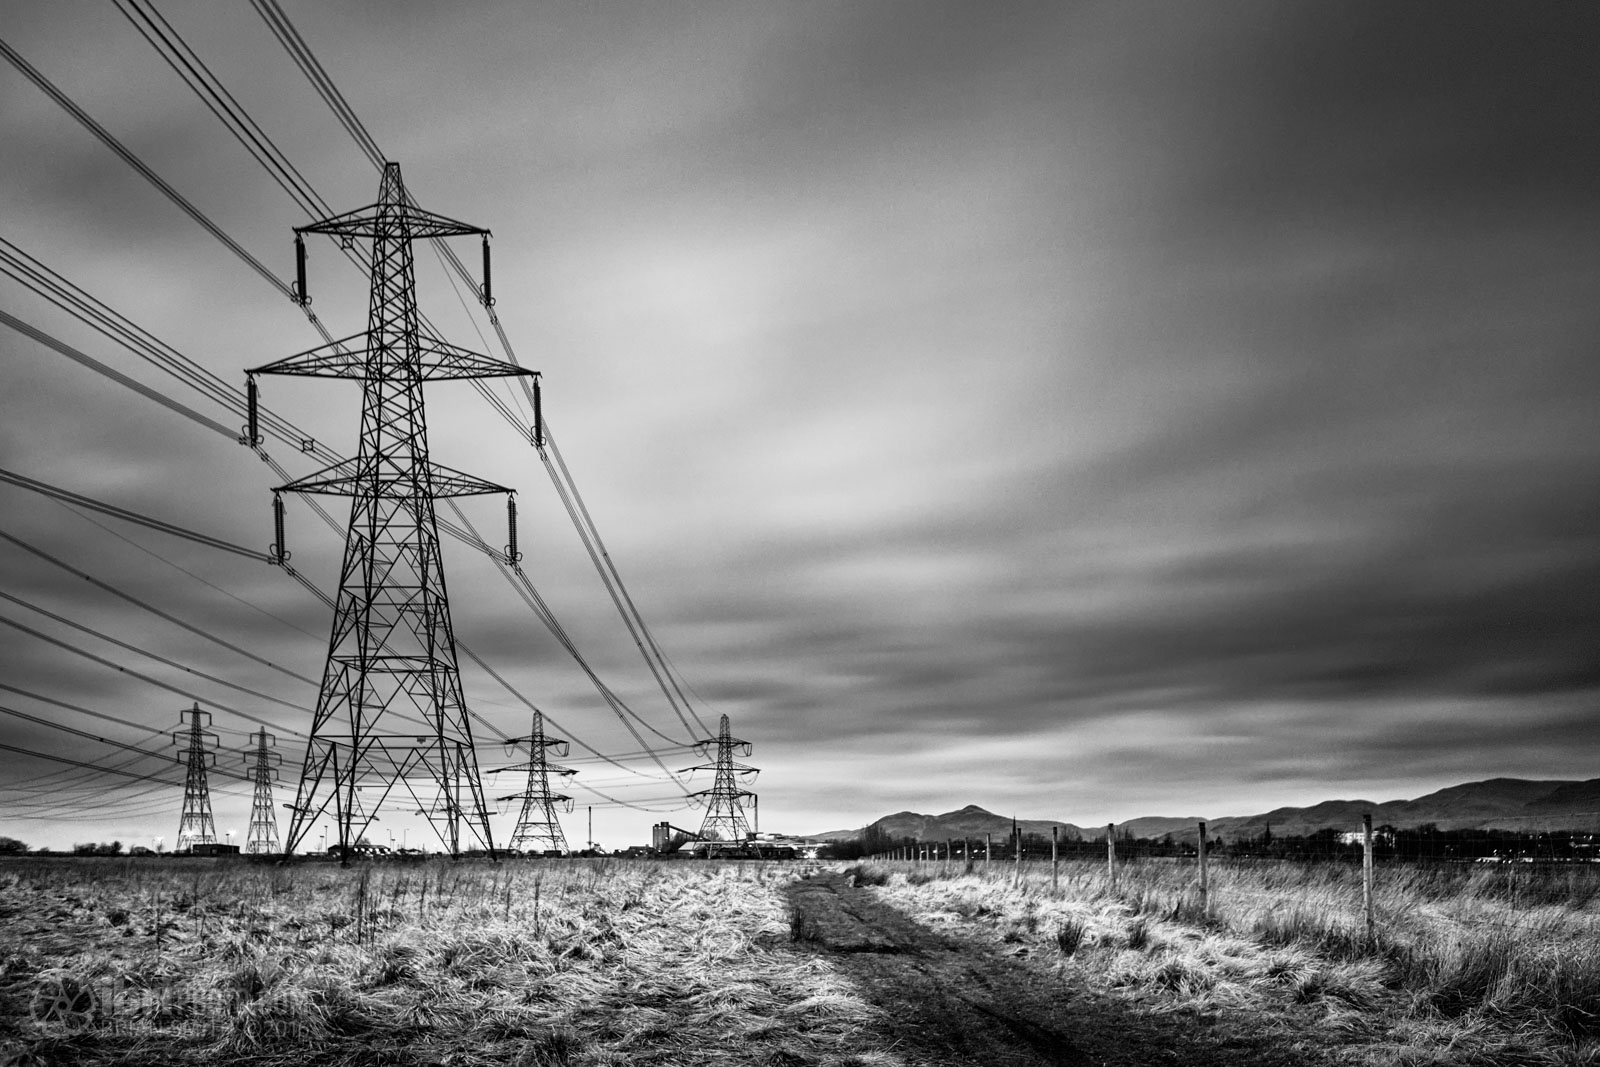 After applying the Lens Correction Filter the pylons are back to vertical.